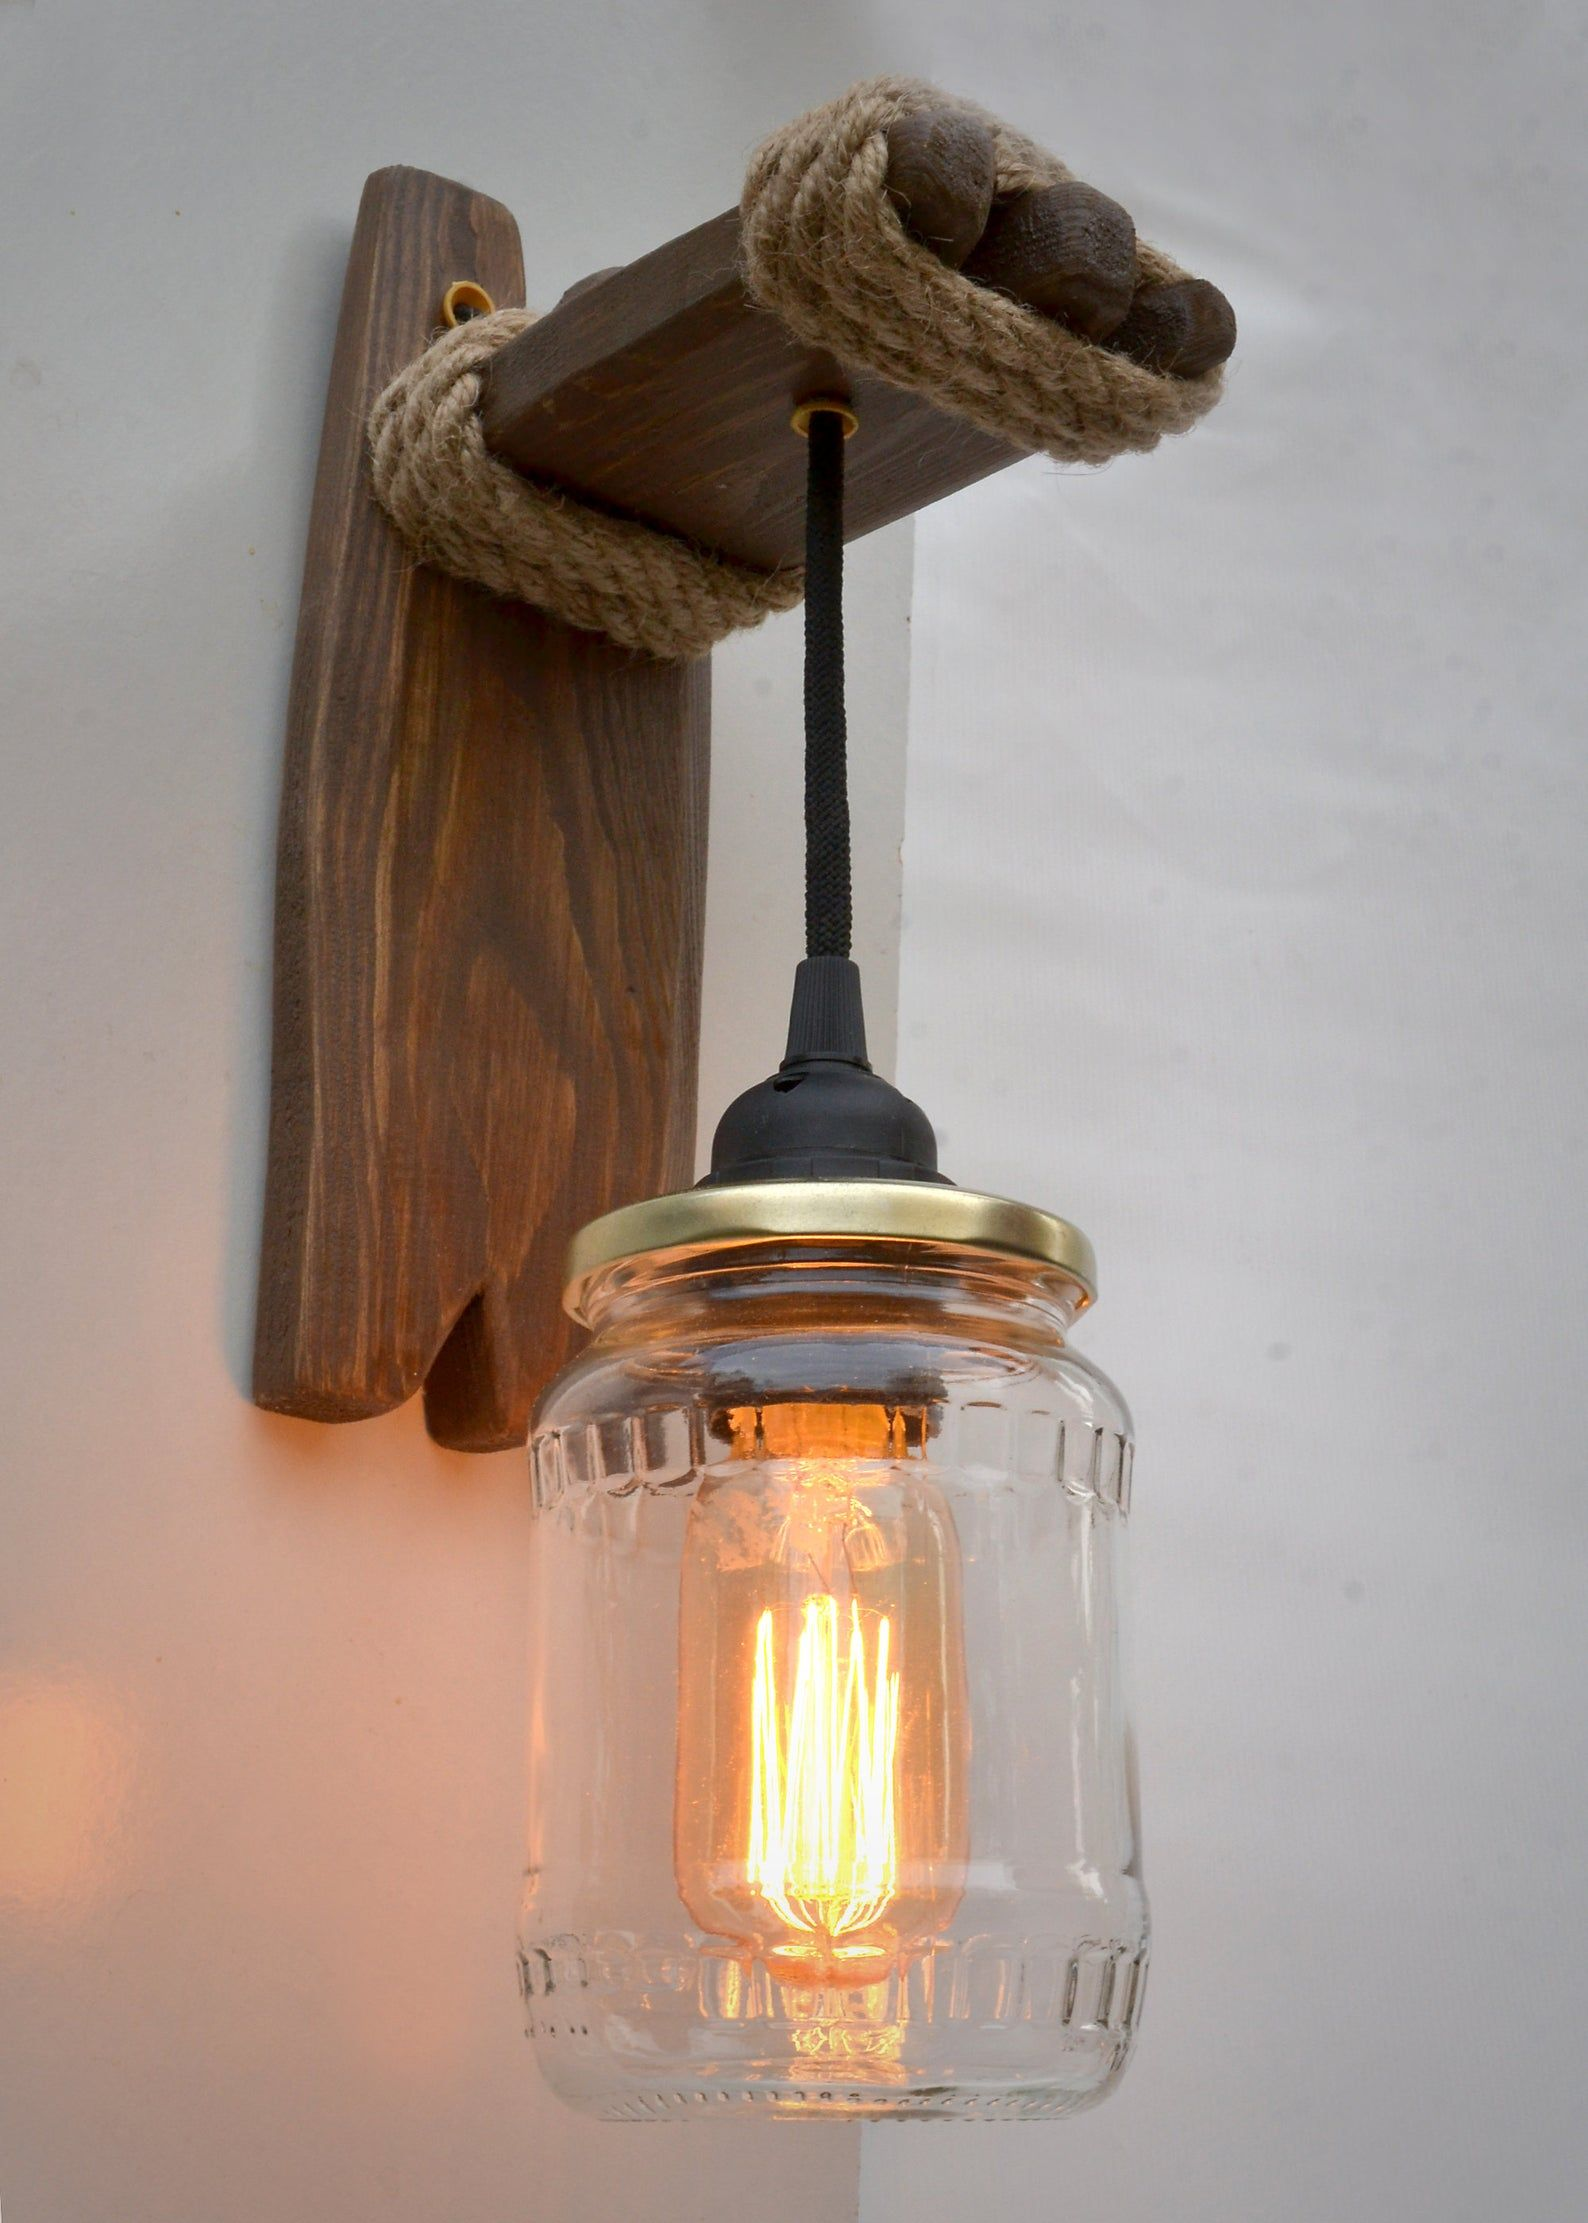 Wall Lamp From Wood And Canning Jar Wooden Sconce Rustic Wall Fixture Mason Jar Lamp Wall Light Wood Wall Lamp Original Lamp In 2020 Wooden Sconces Wood Wall Lamps Mason Jar Lamp